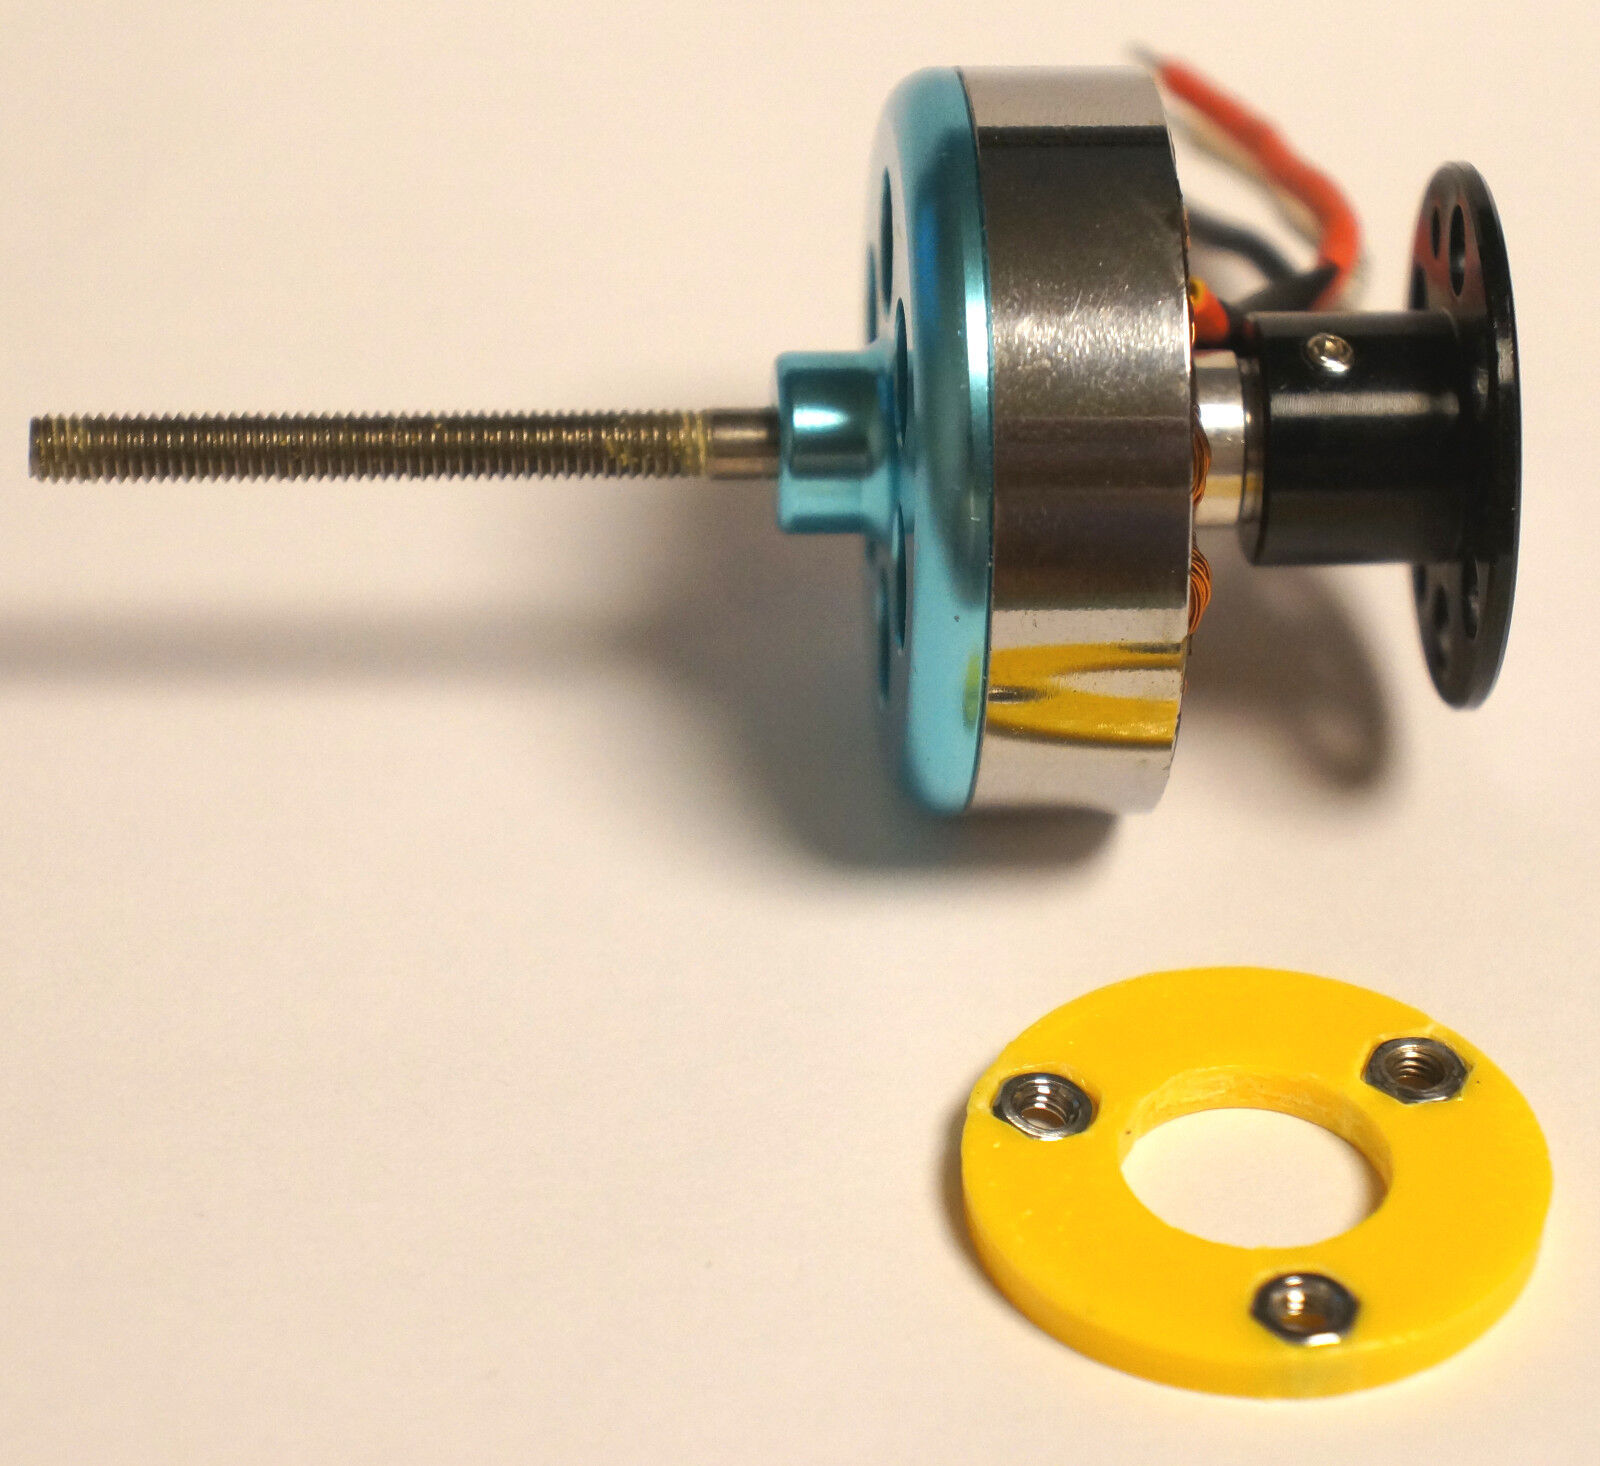 ROV thruster 3D ABS printed nozzle for DT700 motor DIY ROV kayak